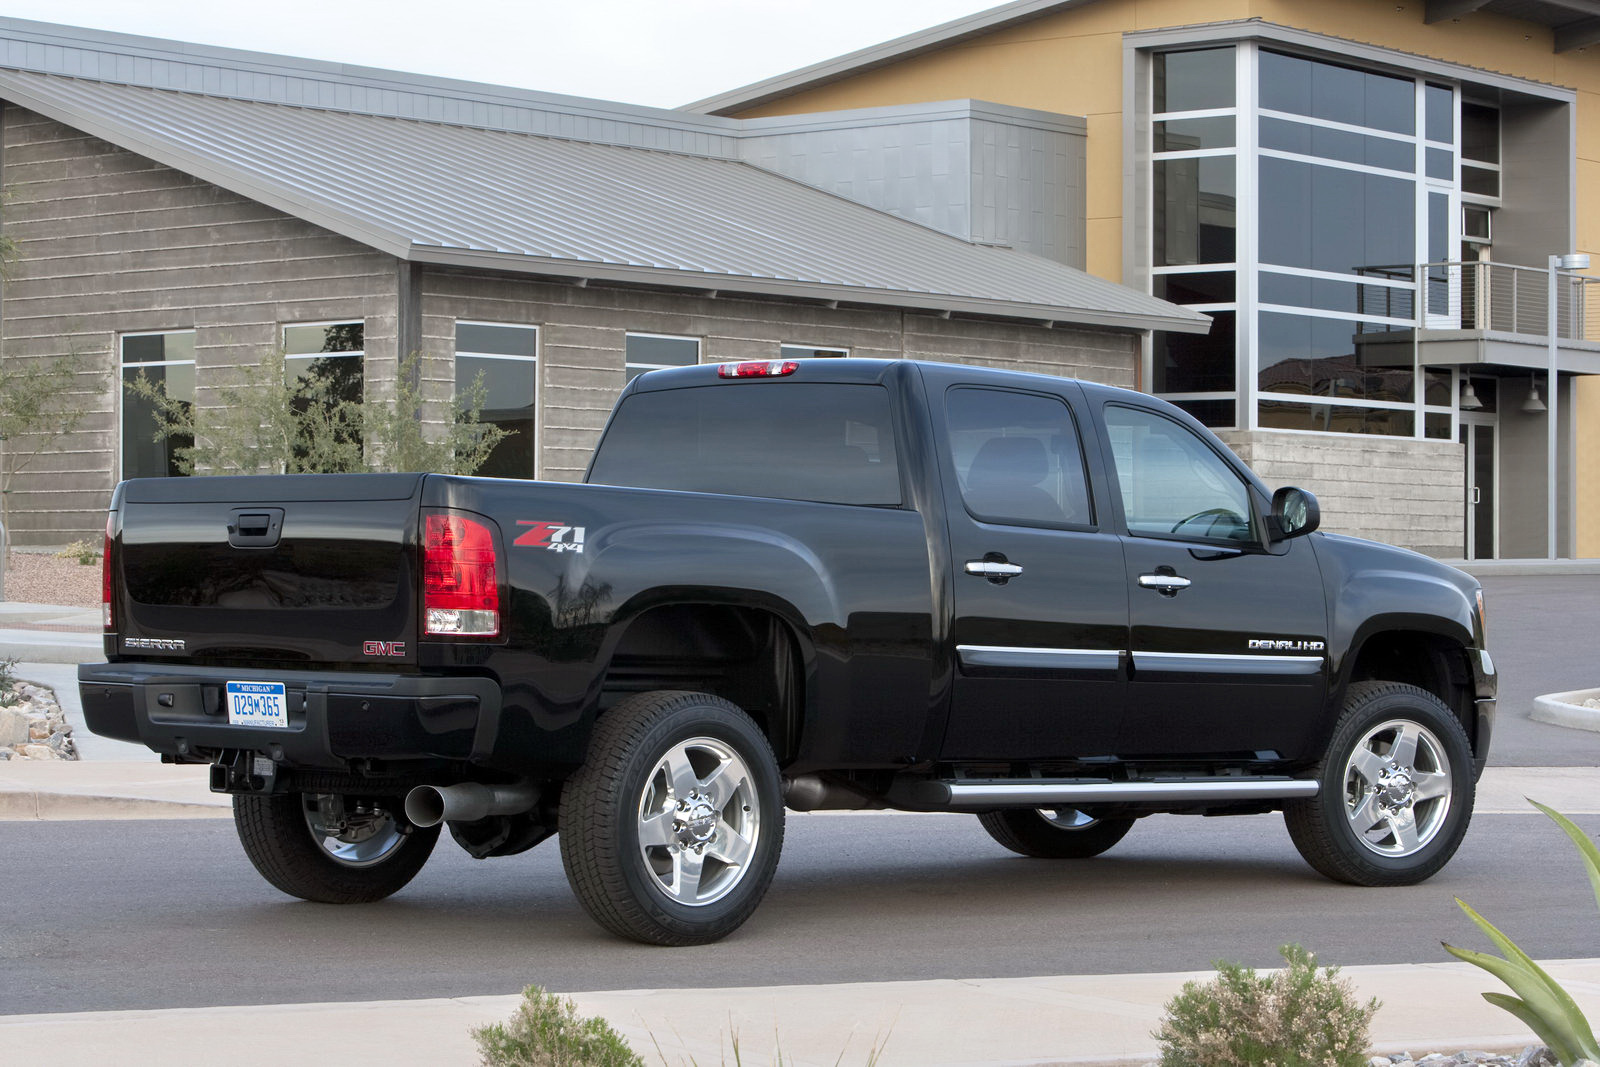 2011 gmc sierra 2500hd values nadaguides autos post. Black Bedroom Furniture Sets. Home Design Ideas